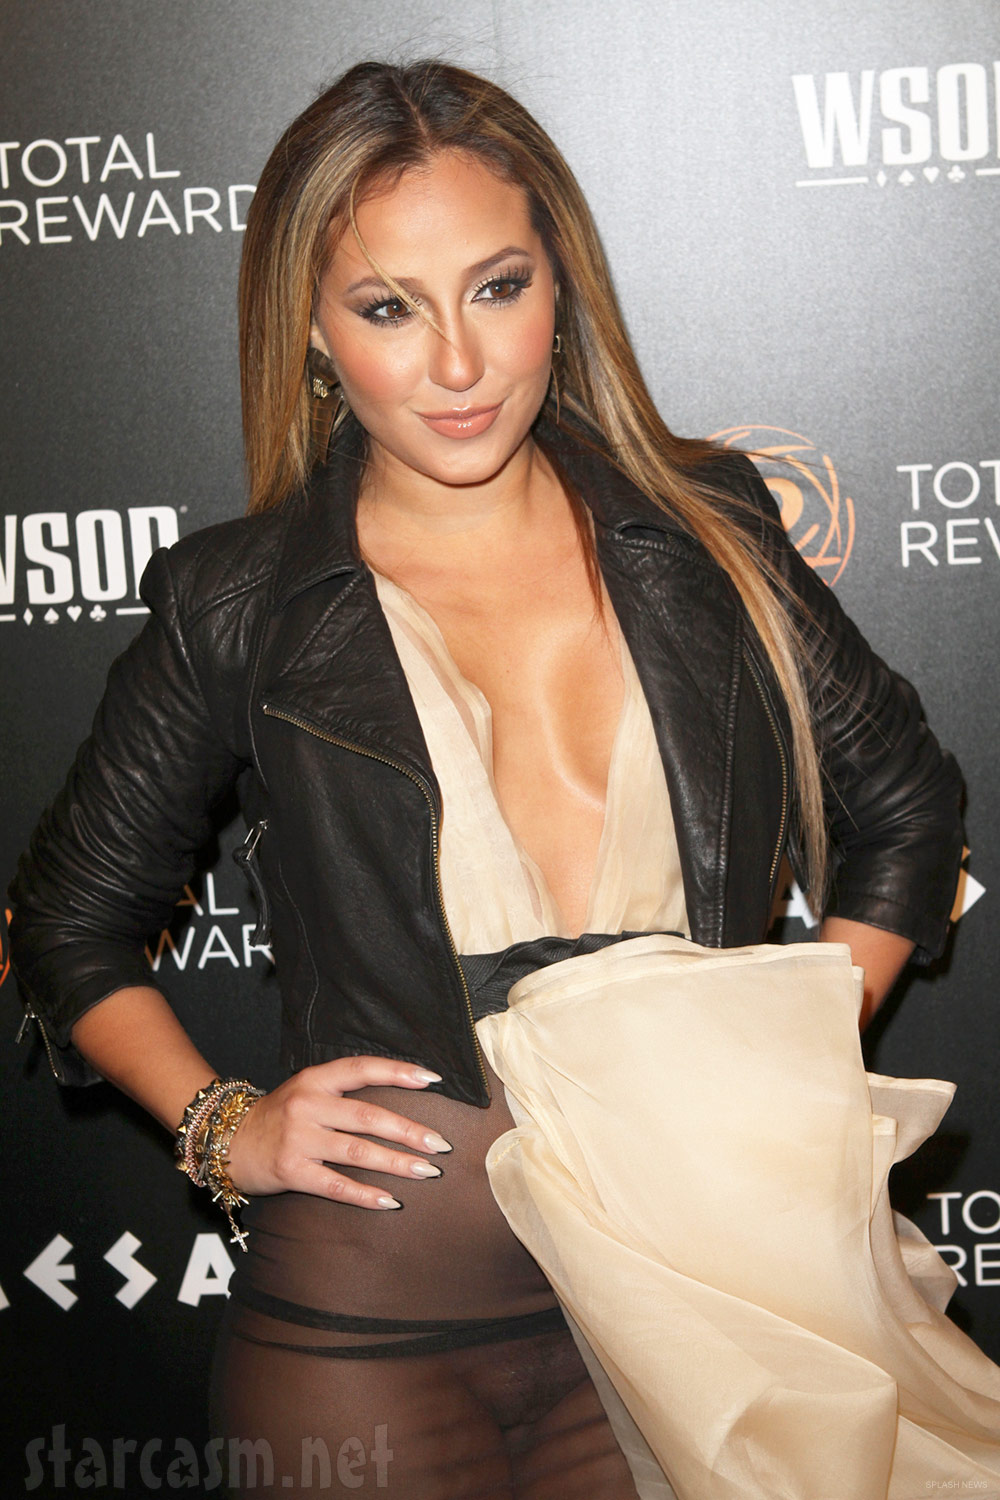 Wardrobe Malfunction Unleashes Her Cheetah Girl Starcasm